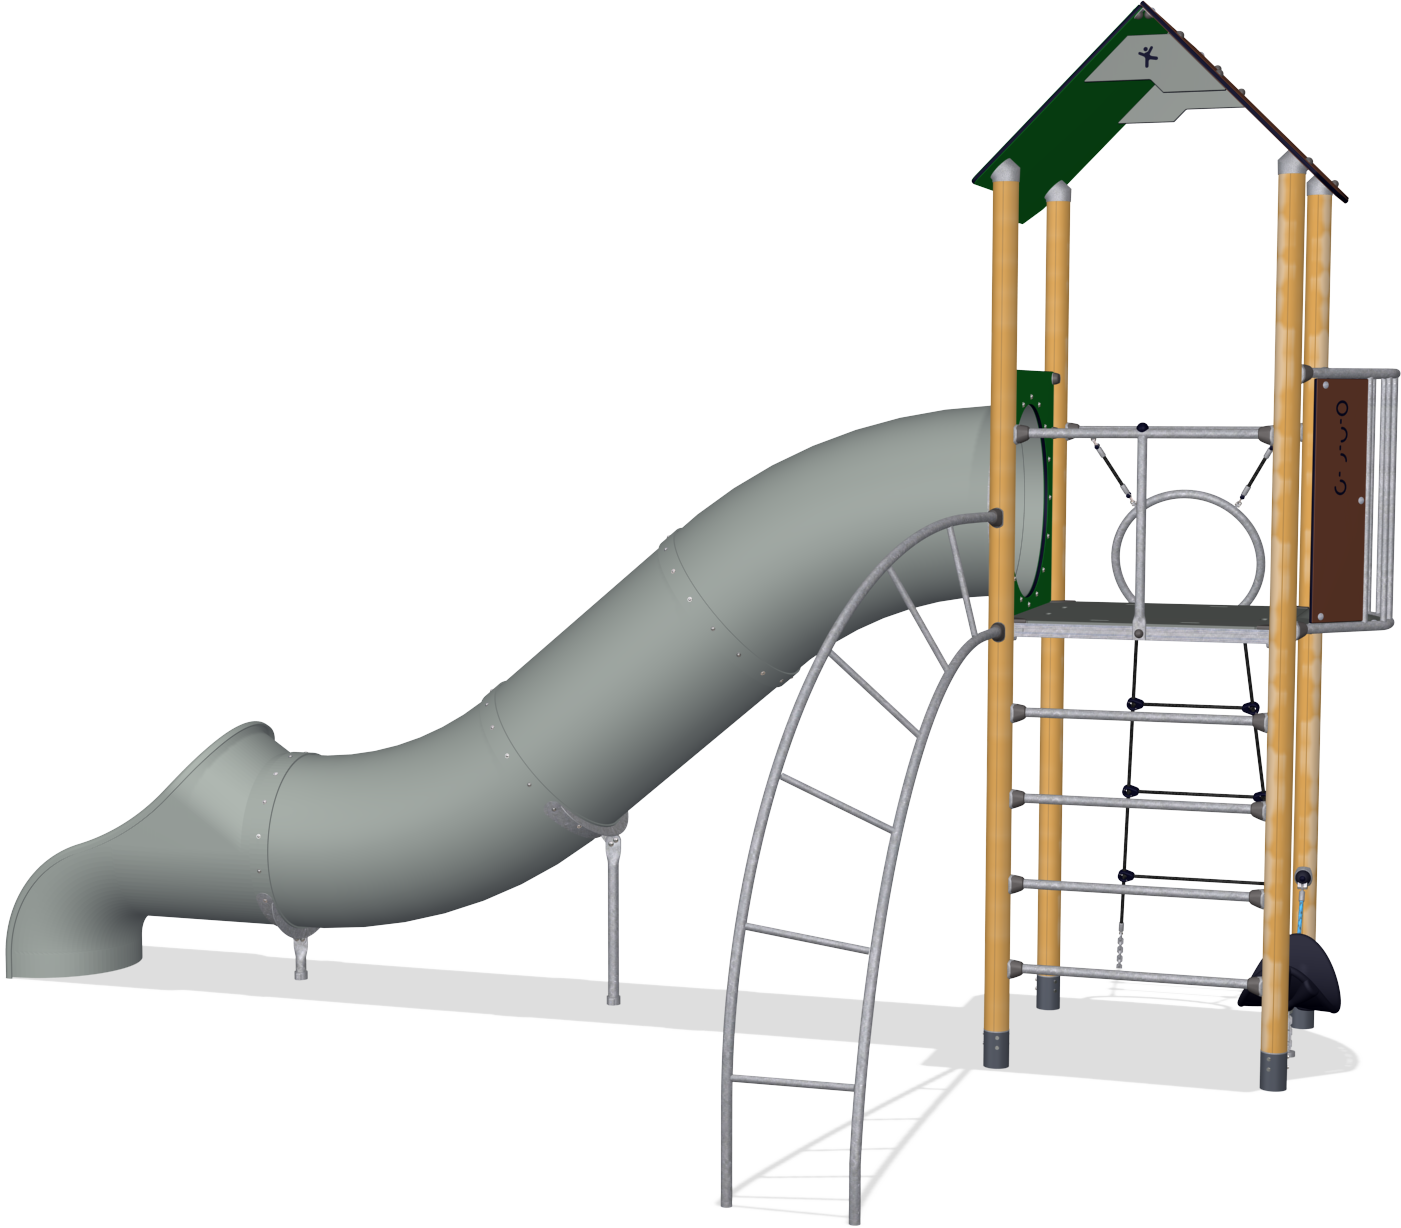 Slide drawing at getdrawings. Recess clipart playground